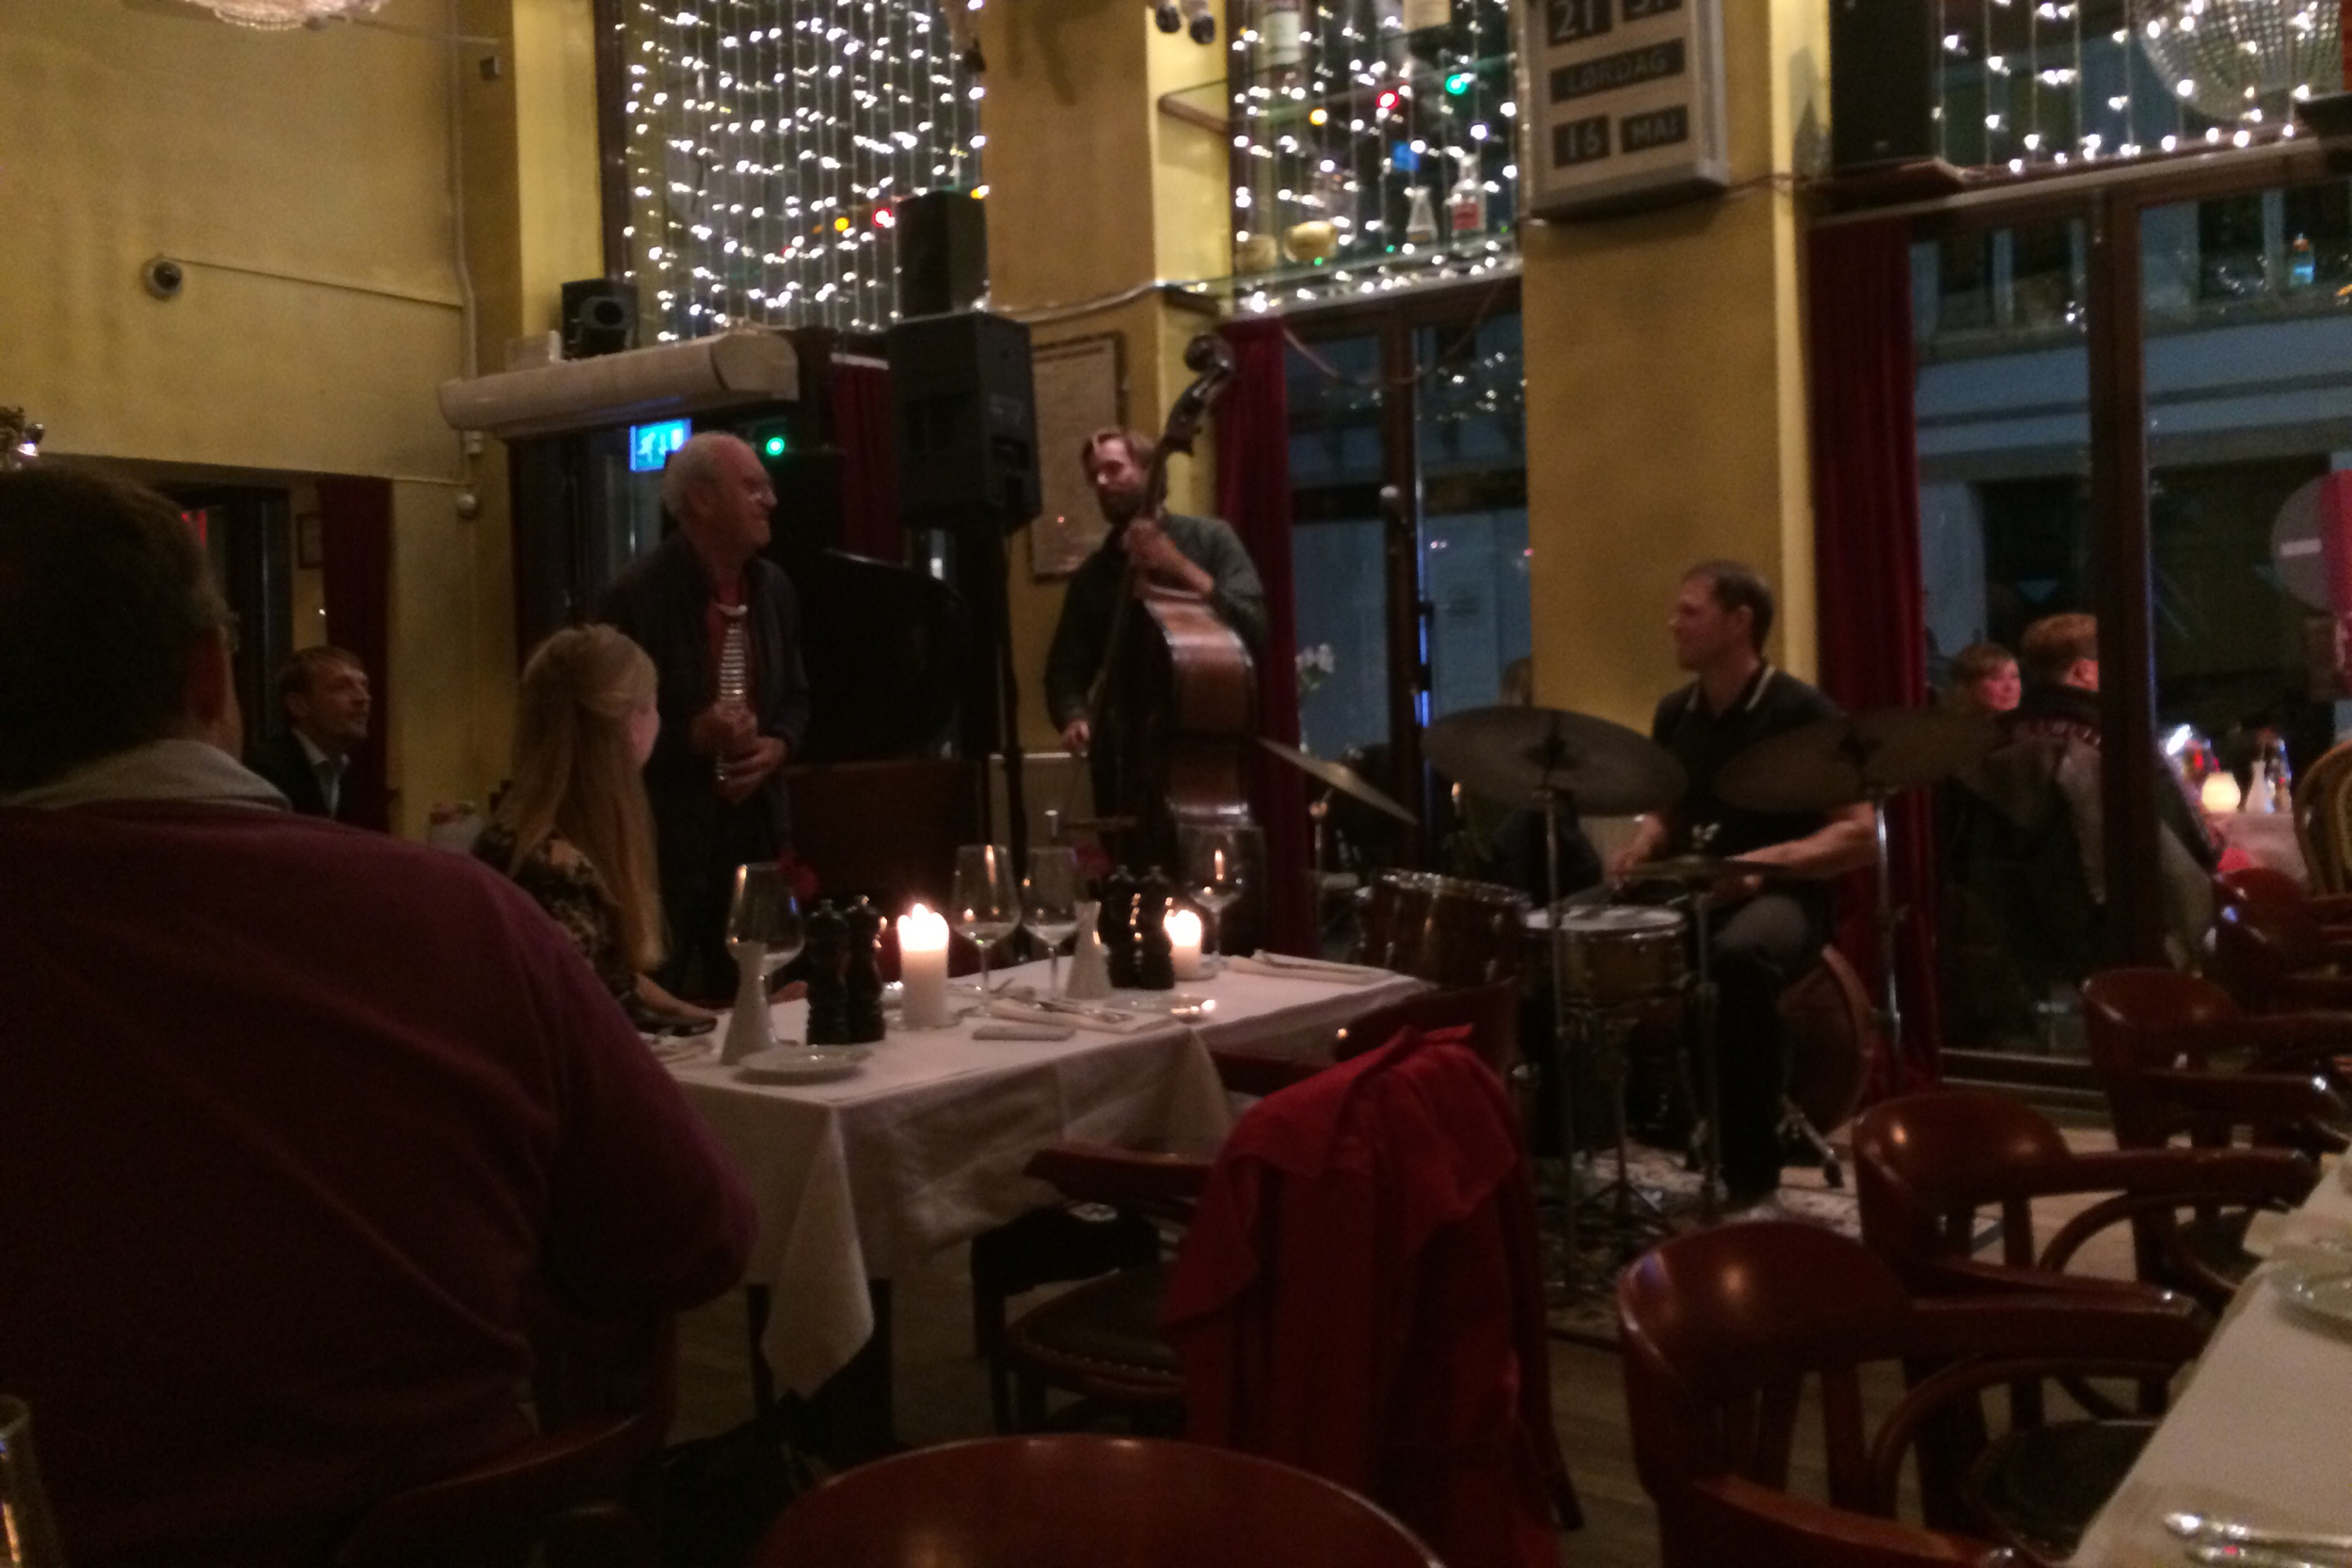 We got coffee after dinner and stumbled upon this jazz group and then someone Simone tells me is a very famous Danish children's television presenter (think Danish Mr. Rogers) rose from his table and joined in, playing a metal necktie.